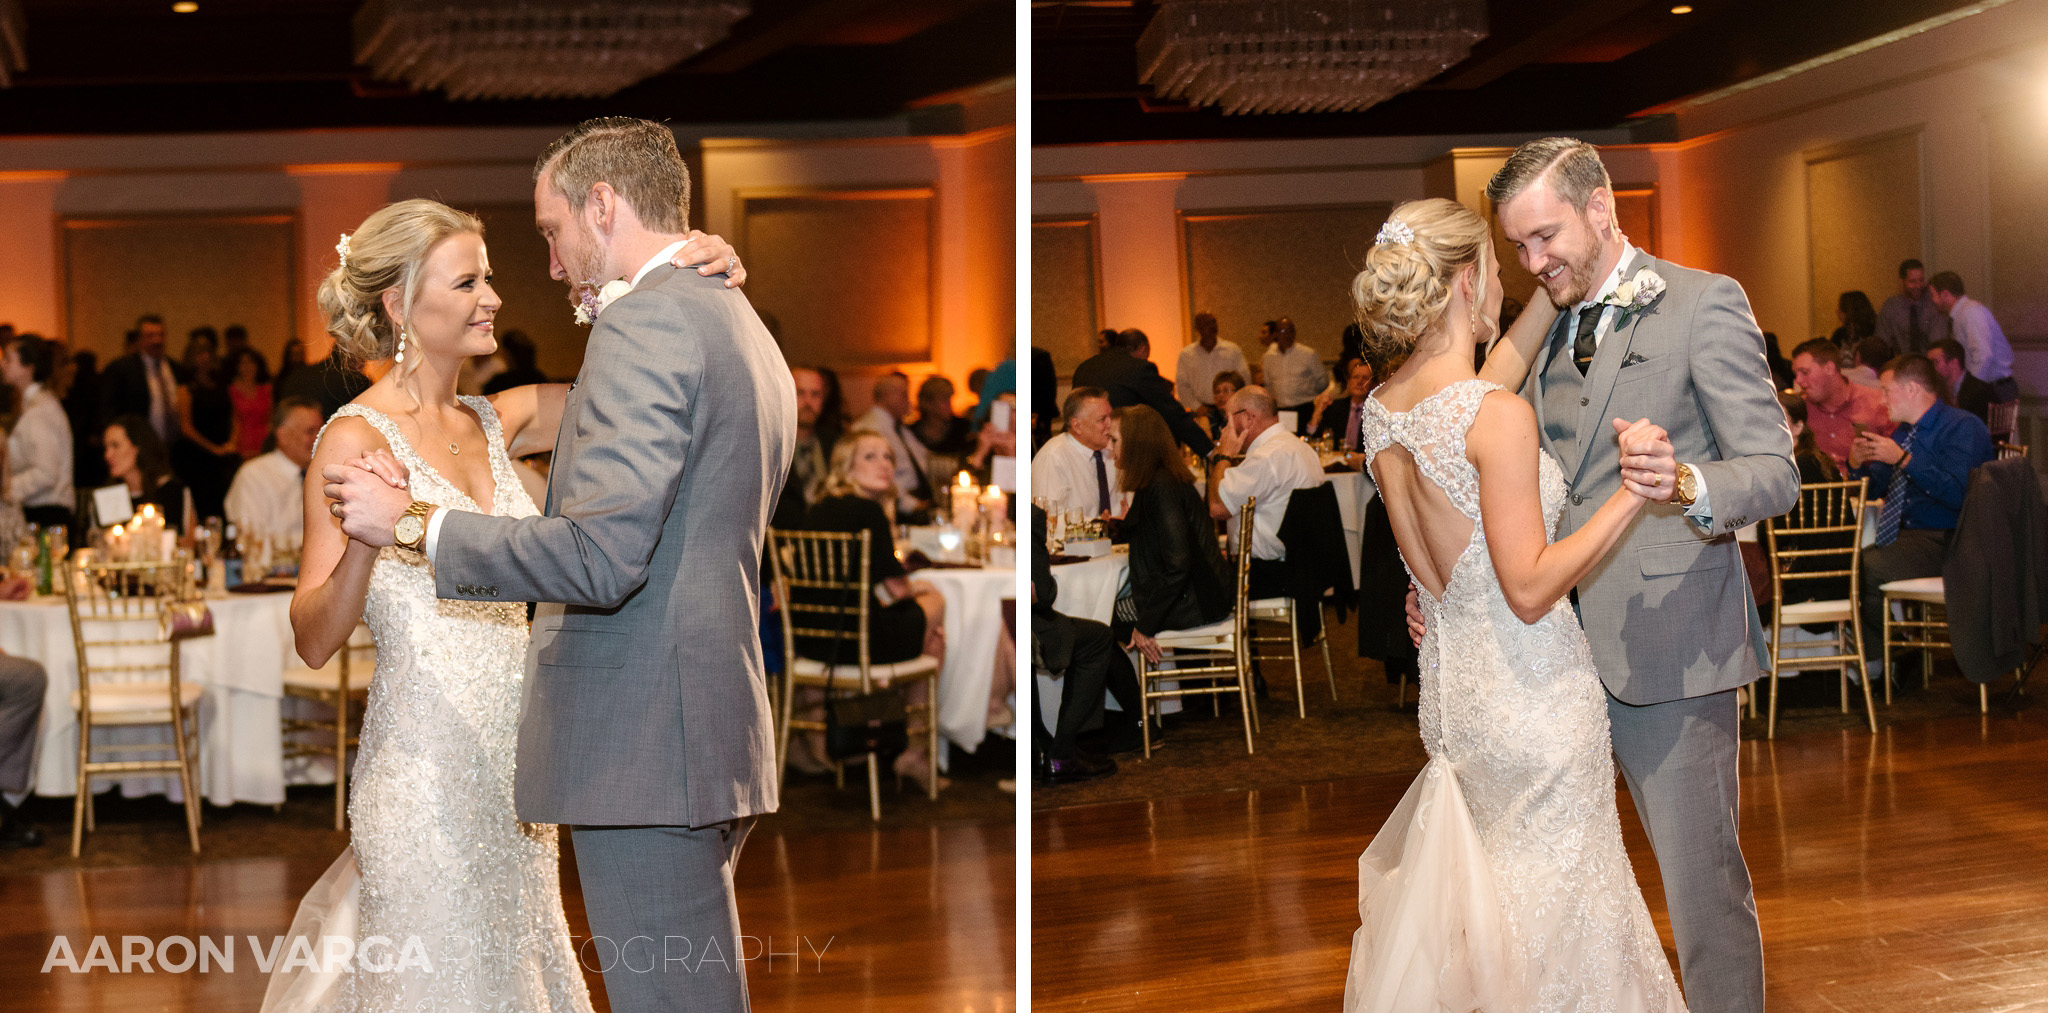 54 montour heights country club wedding first dance - Amy + Bill | Montour Heights Country Club Wedding Photos